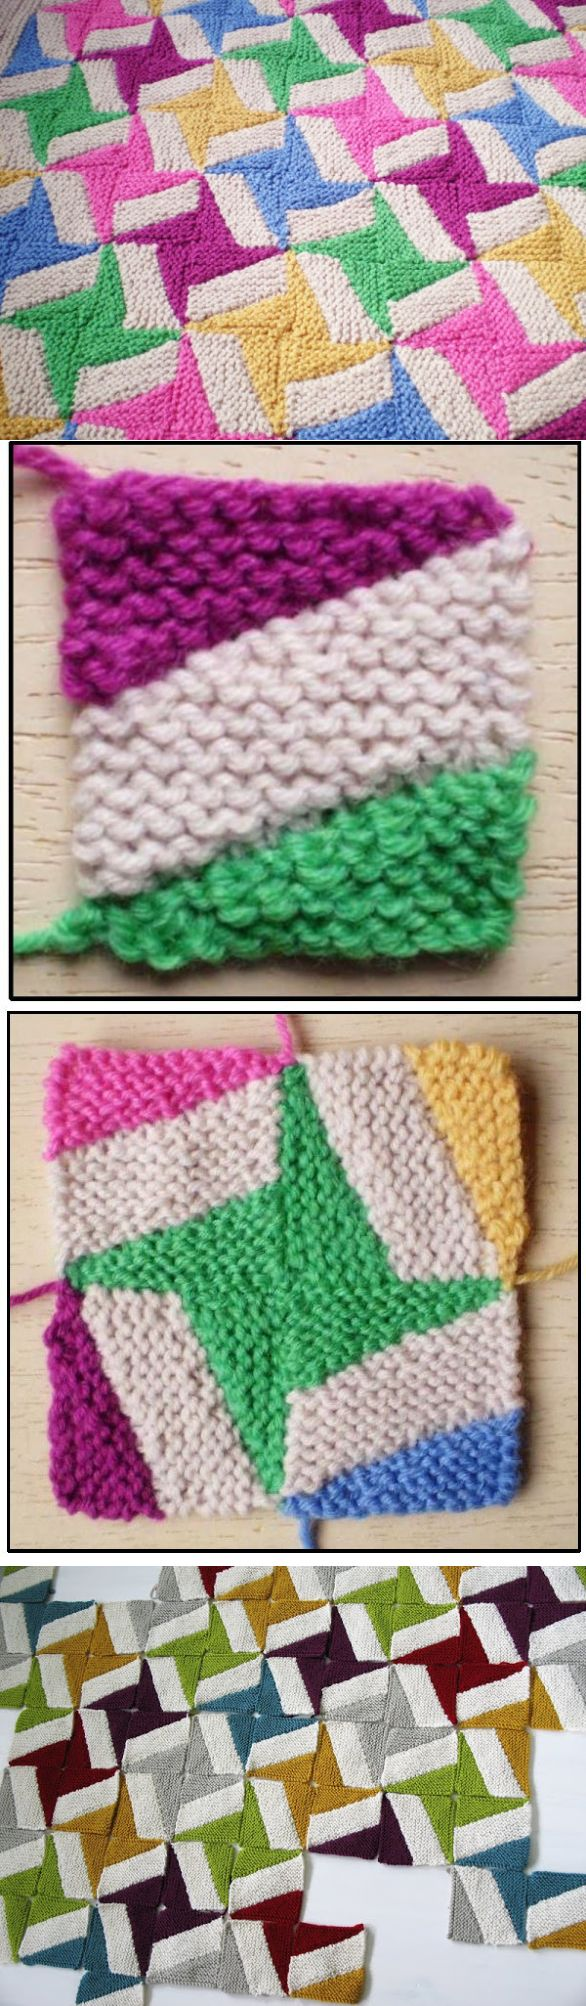 Could do in crochet.